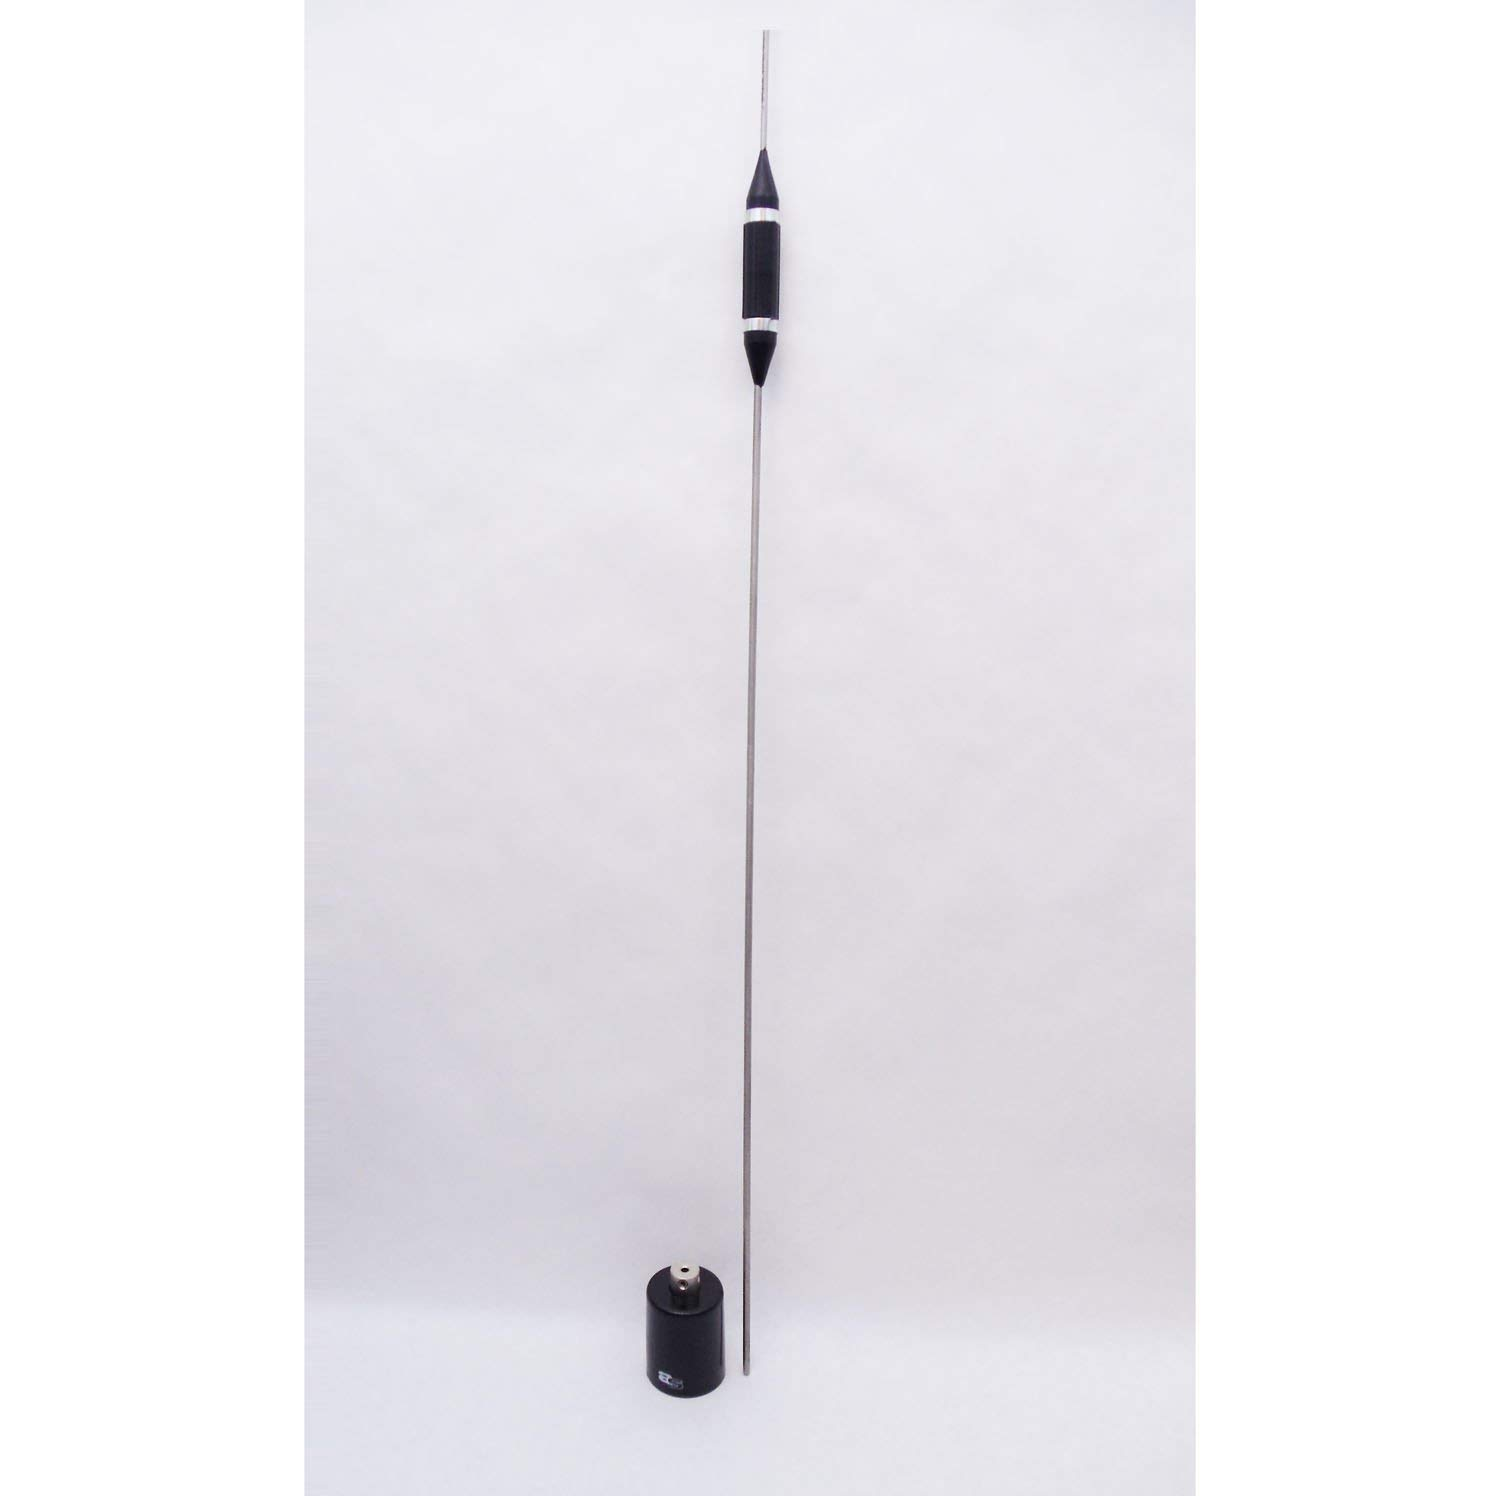 Cheap 470 Mhz Antenna, find 470 Mhz Antenna deals on line at